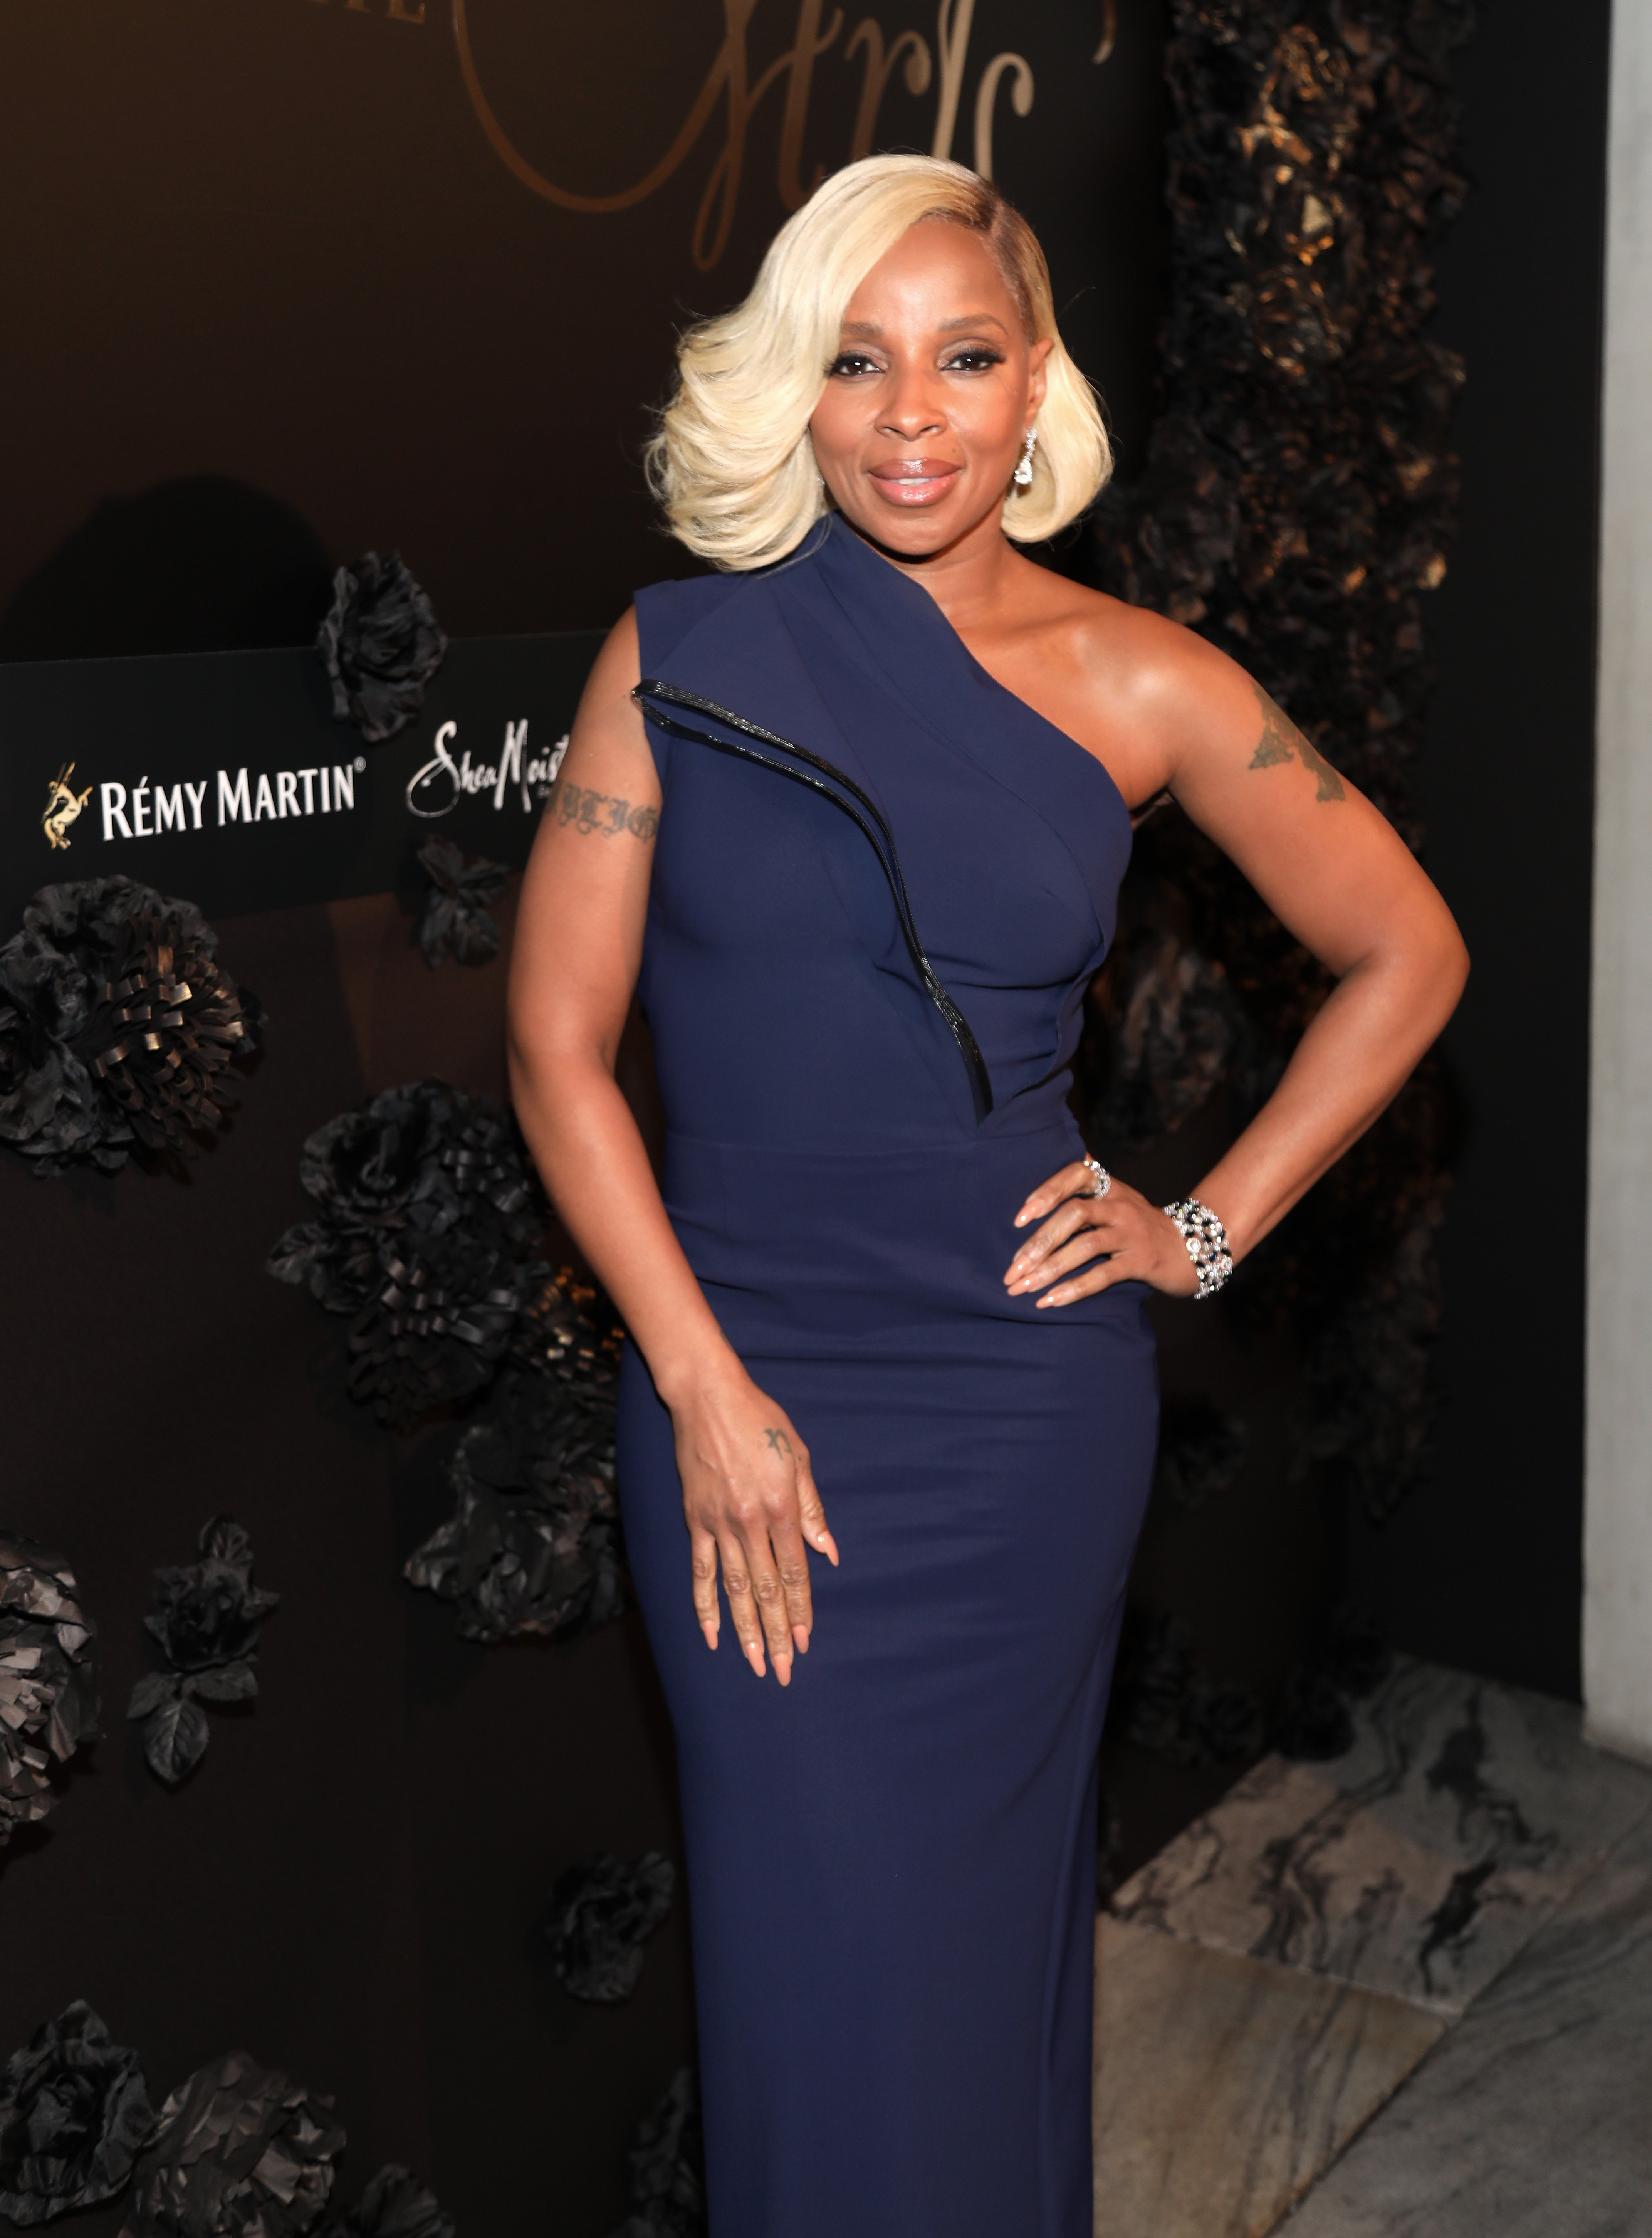 Mary J. Blige poses at Remy Martin's Toast To The Arts on March 2, 2018 in West Hollywood, California. | Source: Getty Images